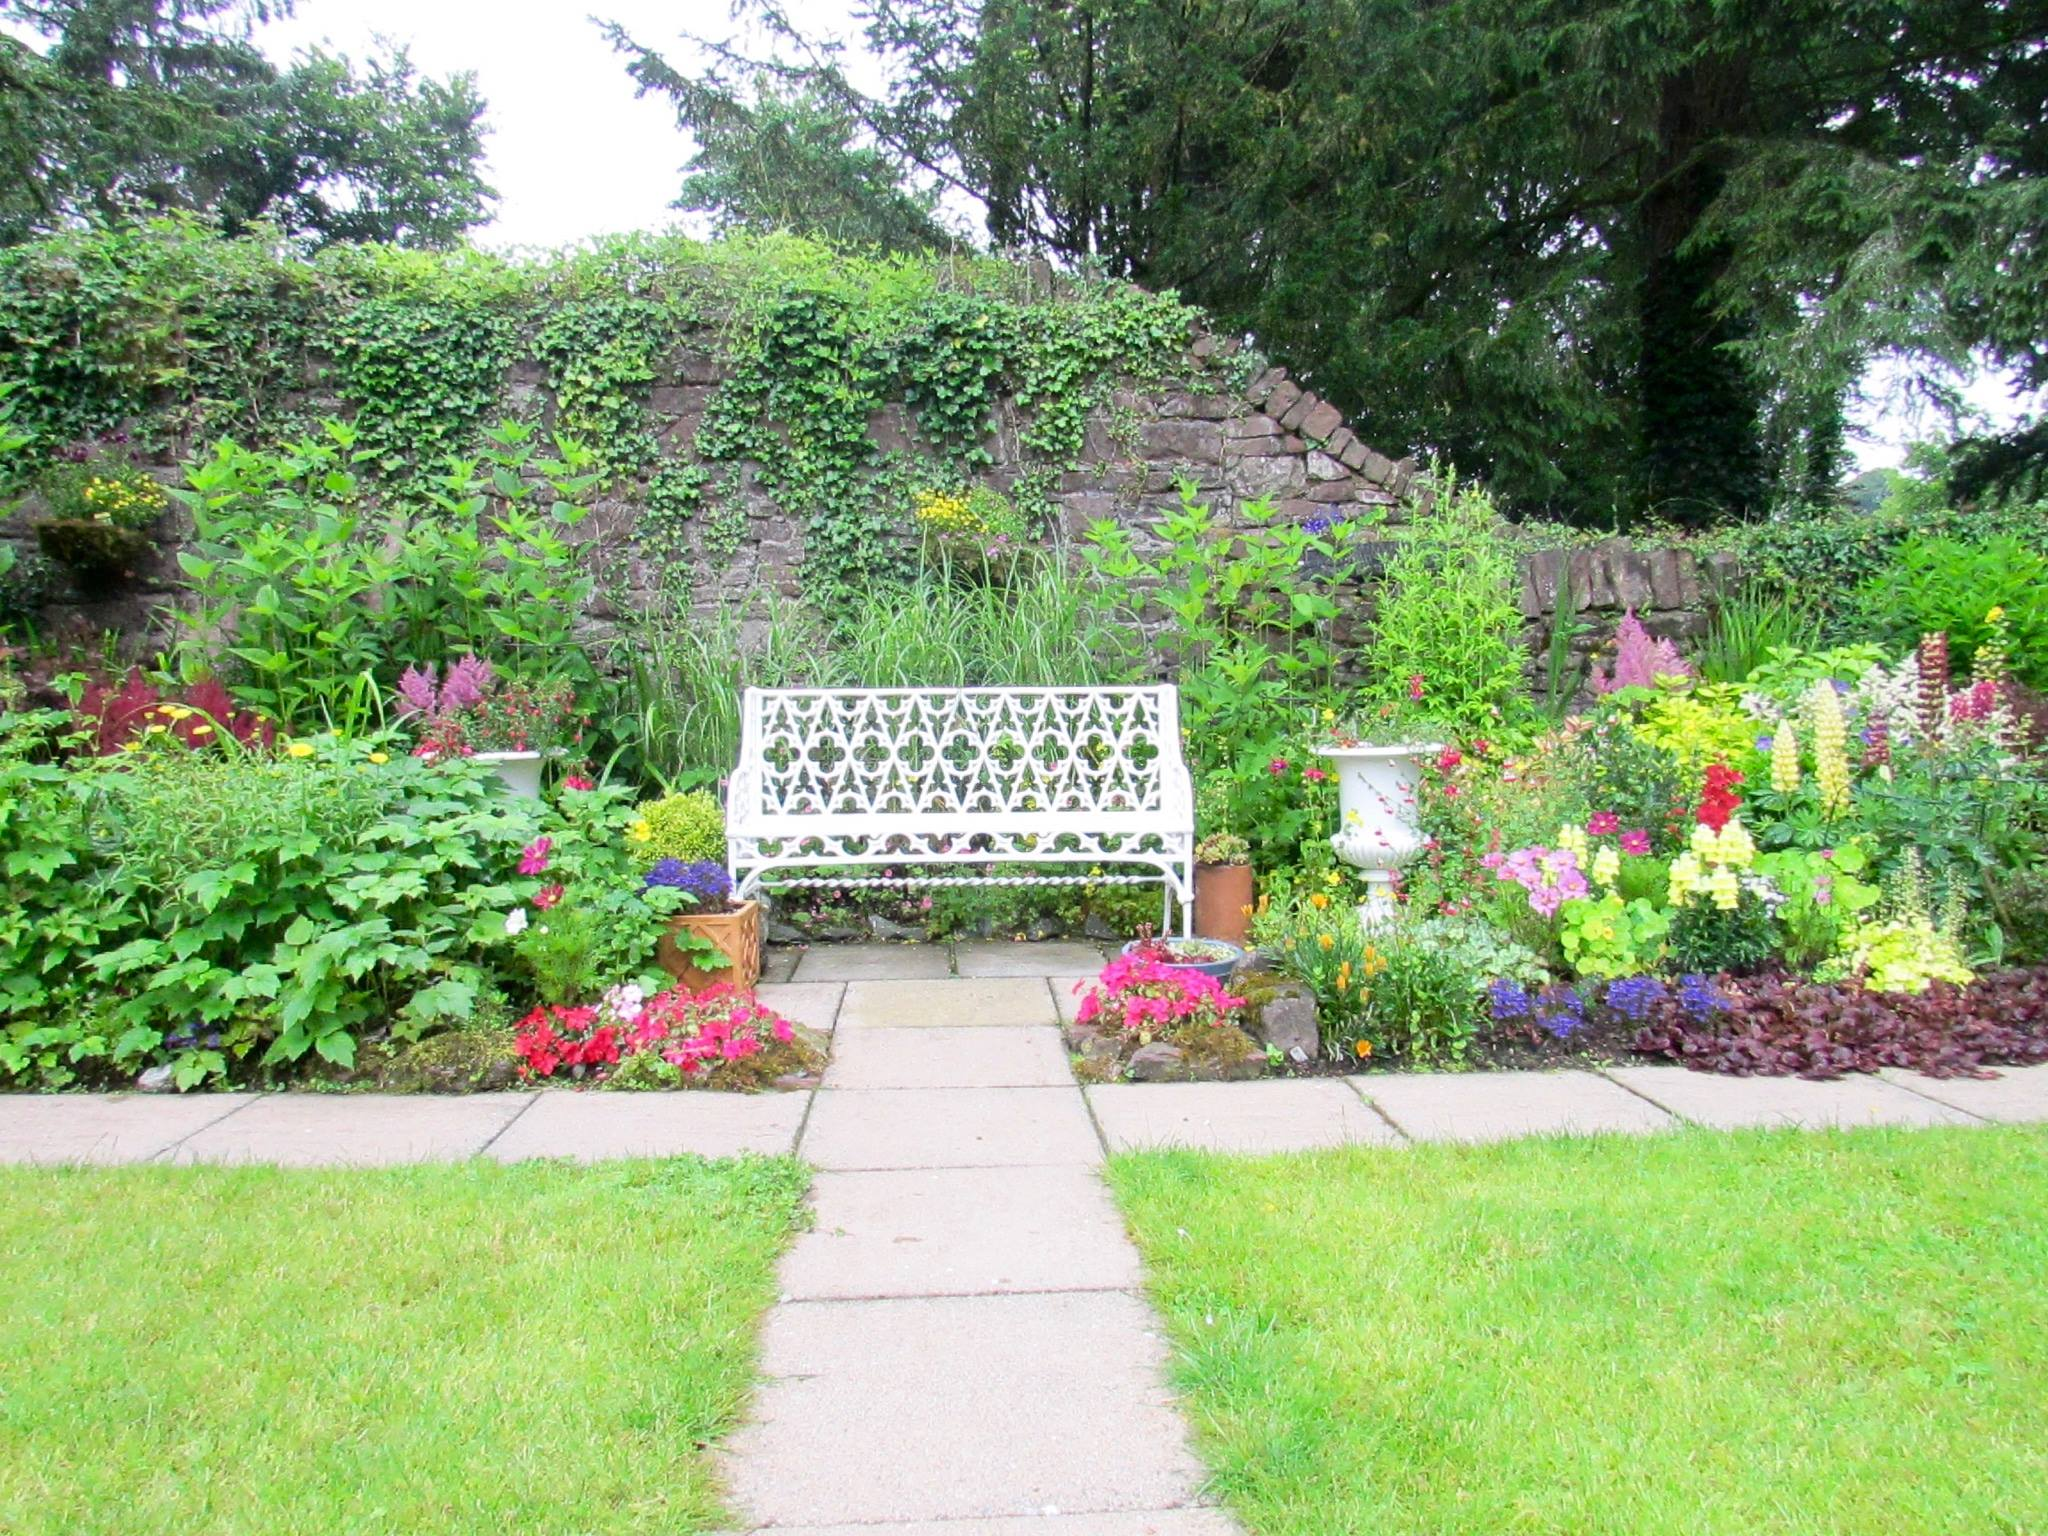 the white bench inside a walled garden where Brian and I prayed each morning for our new church parish